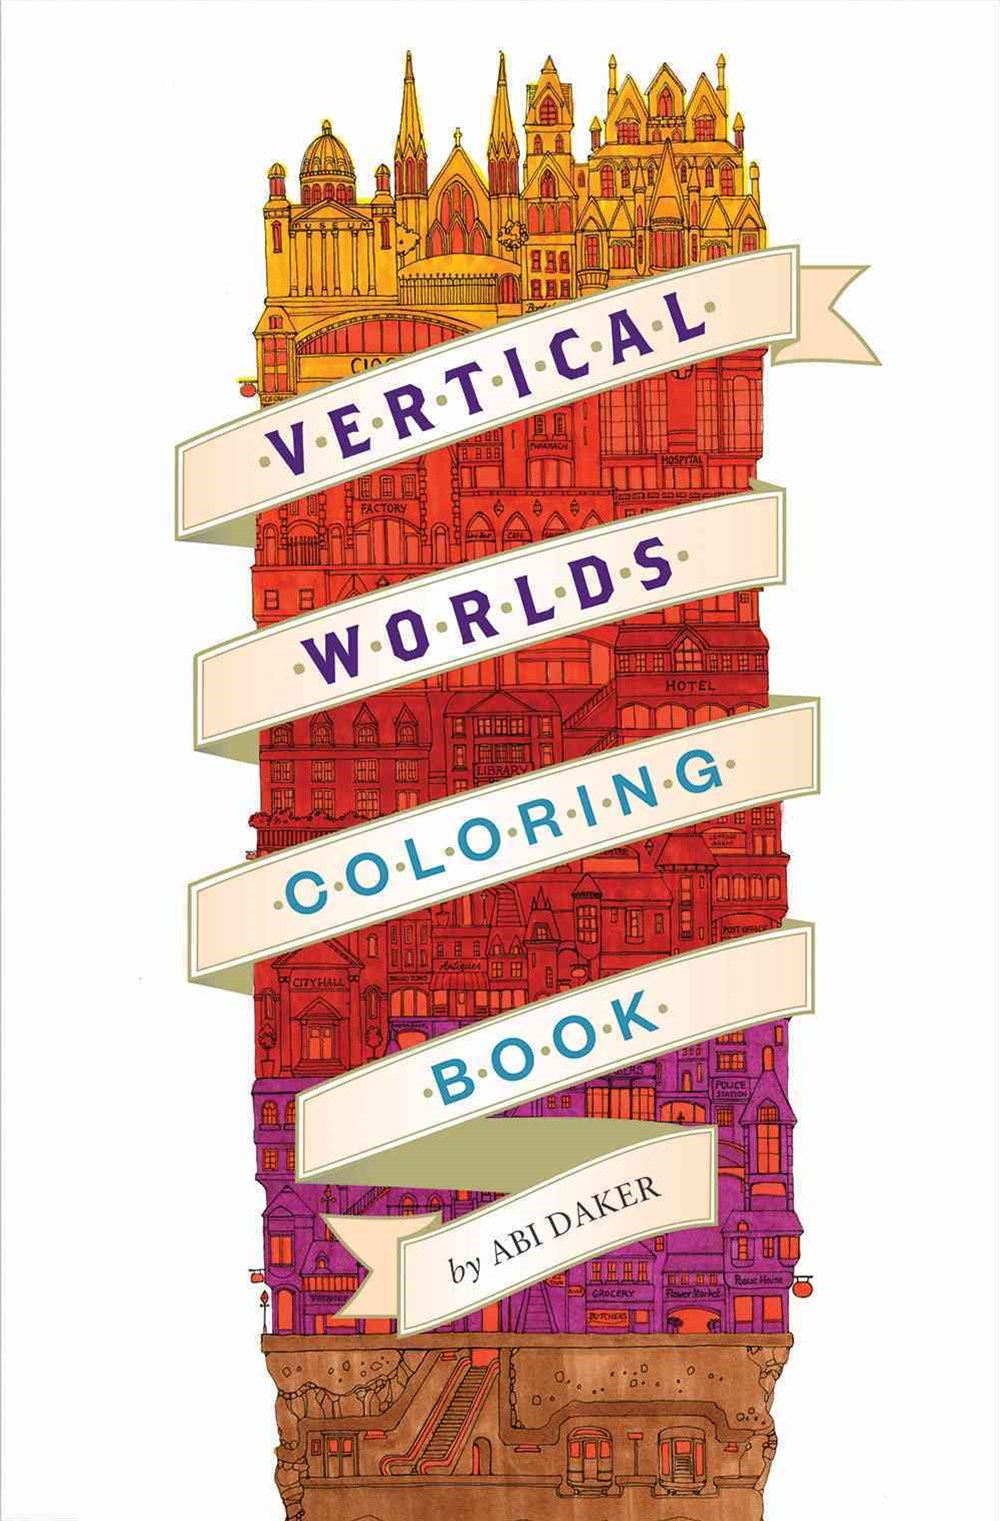 Vertical Worlds (Coloring Book)